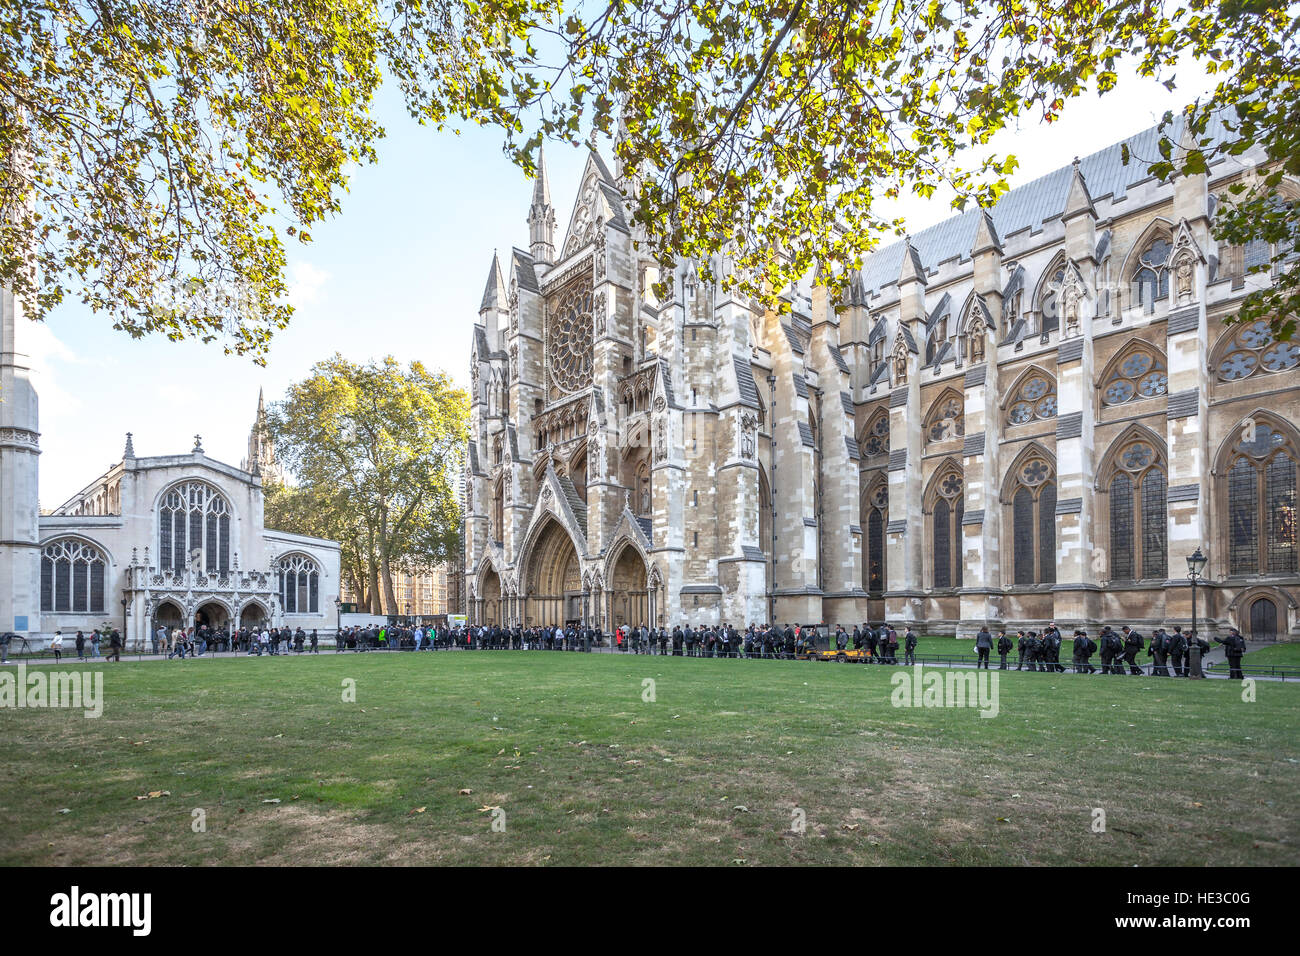 London UK, groups of schoolchildren waiting in line to enter on Westminster Abbey - Stock Image